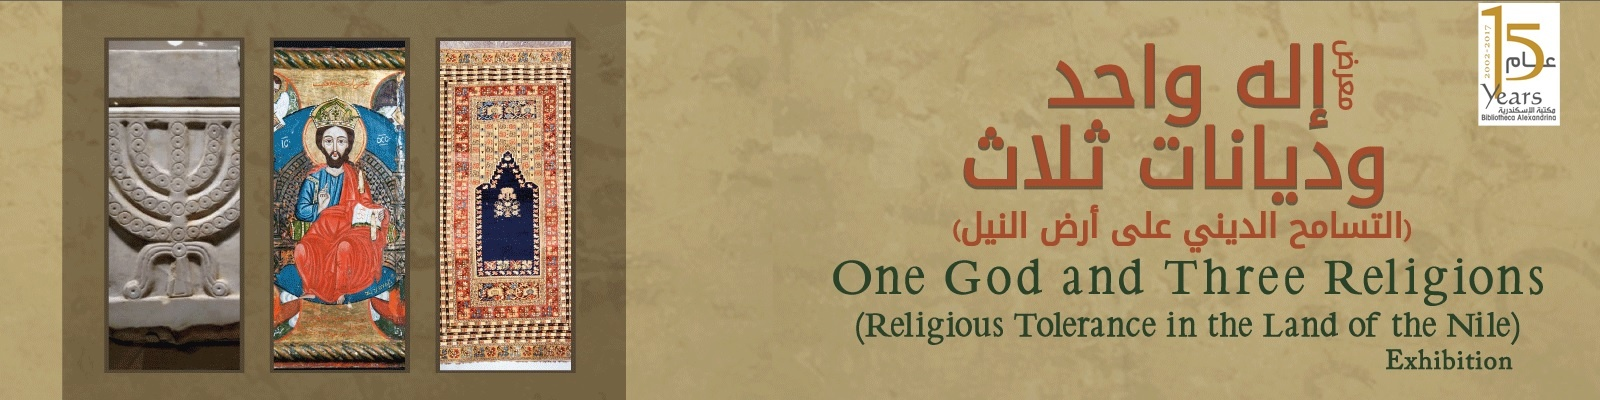 One God and Three Religions: Religious Tolerance in the Land of the Nile